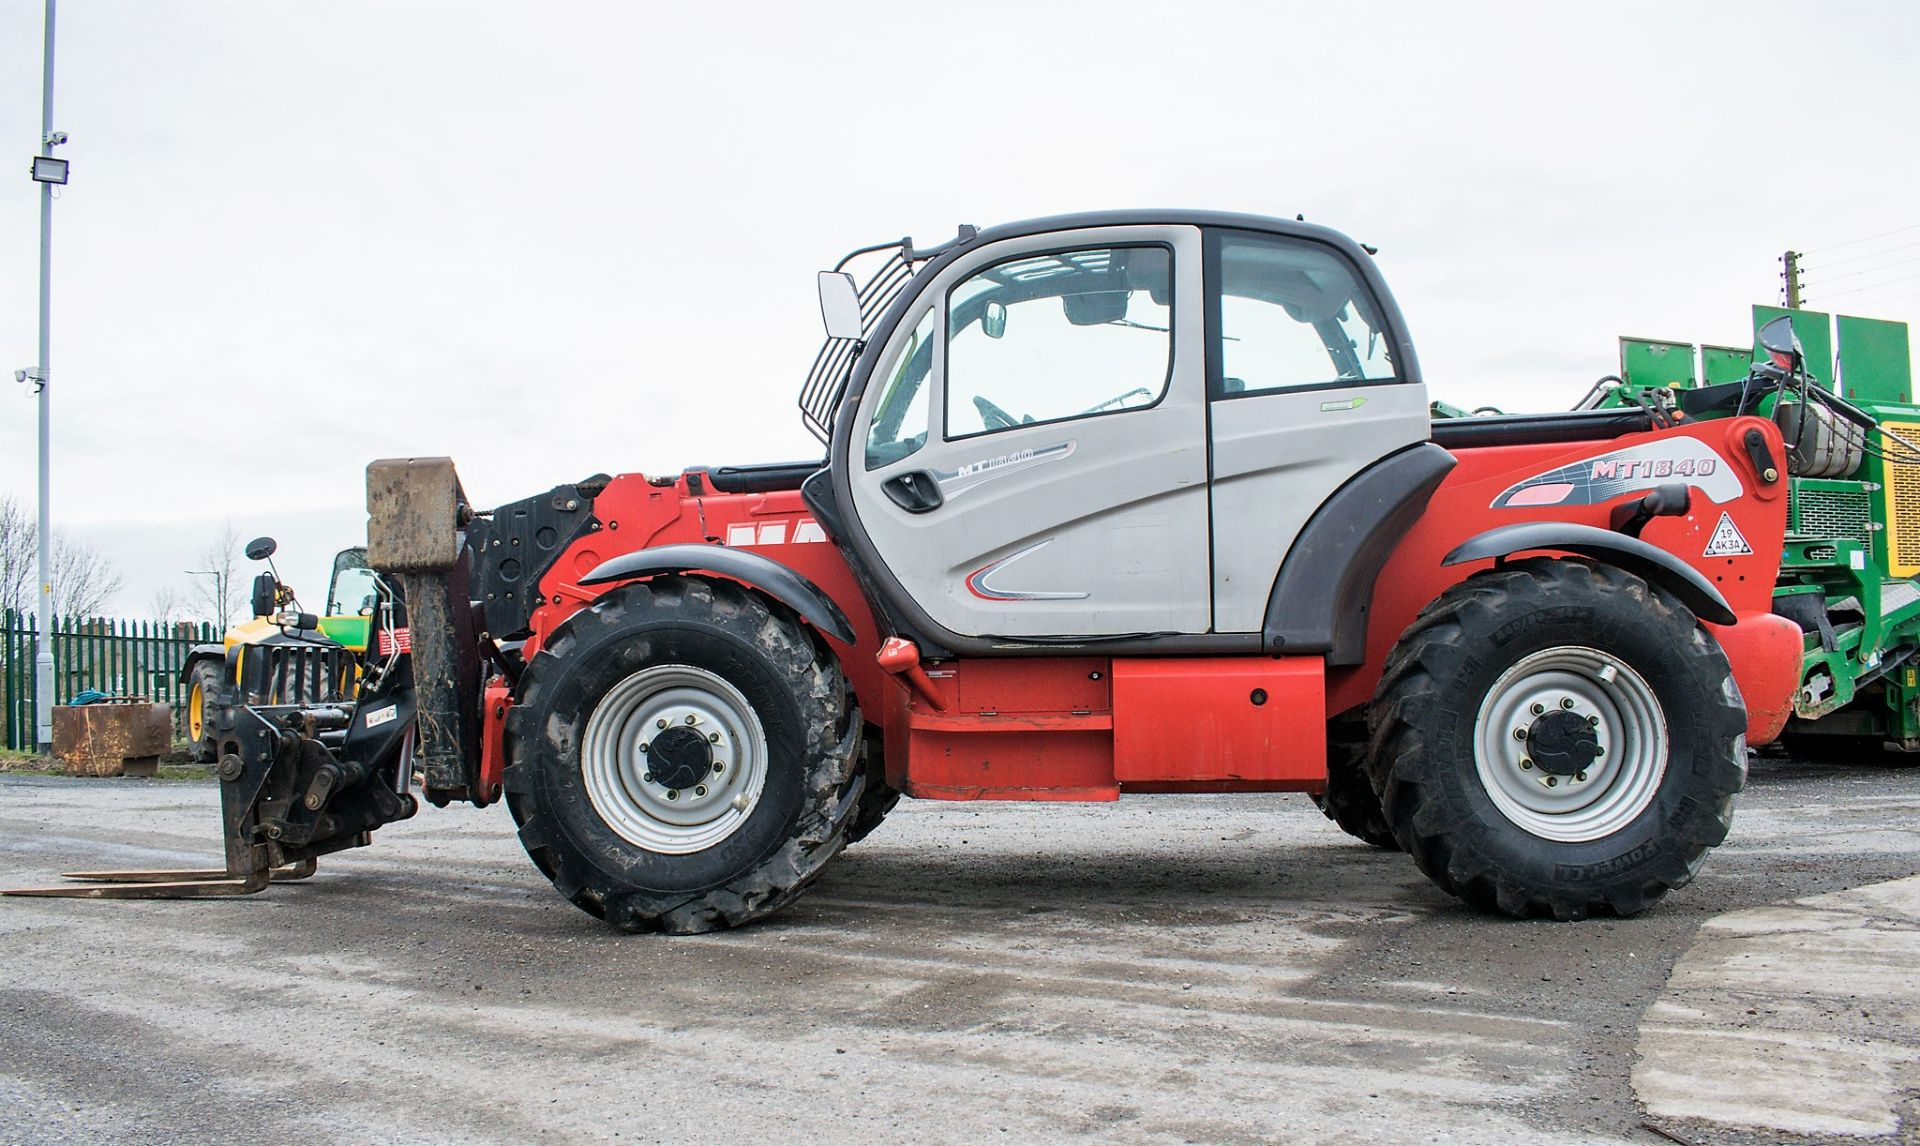 Lot 1 - Manitou MT1840 18 metre telescopic handler Year: 2014 S/N: 942628 Recorded Hours: 4160 c/w sway